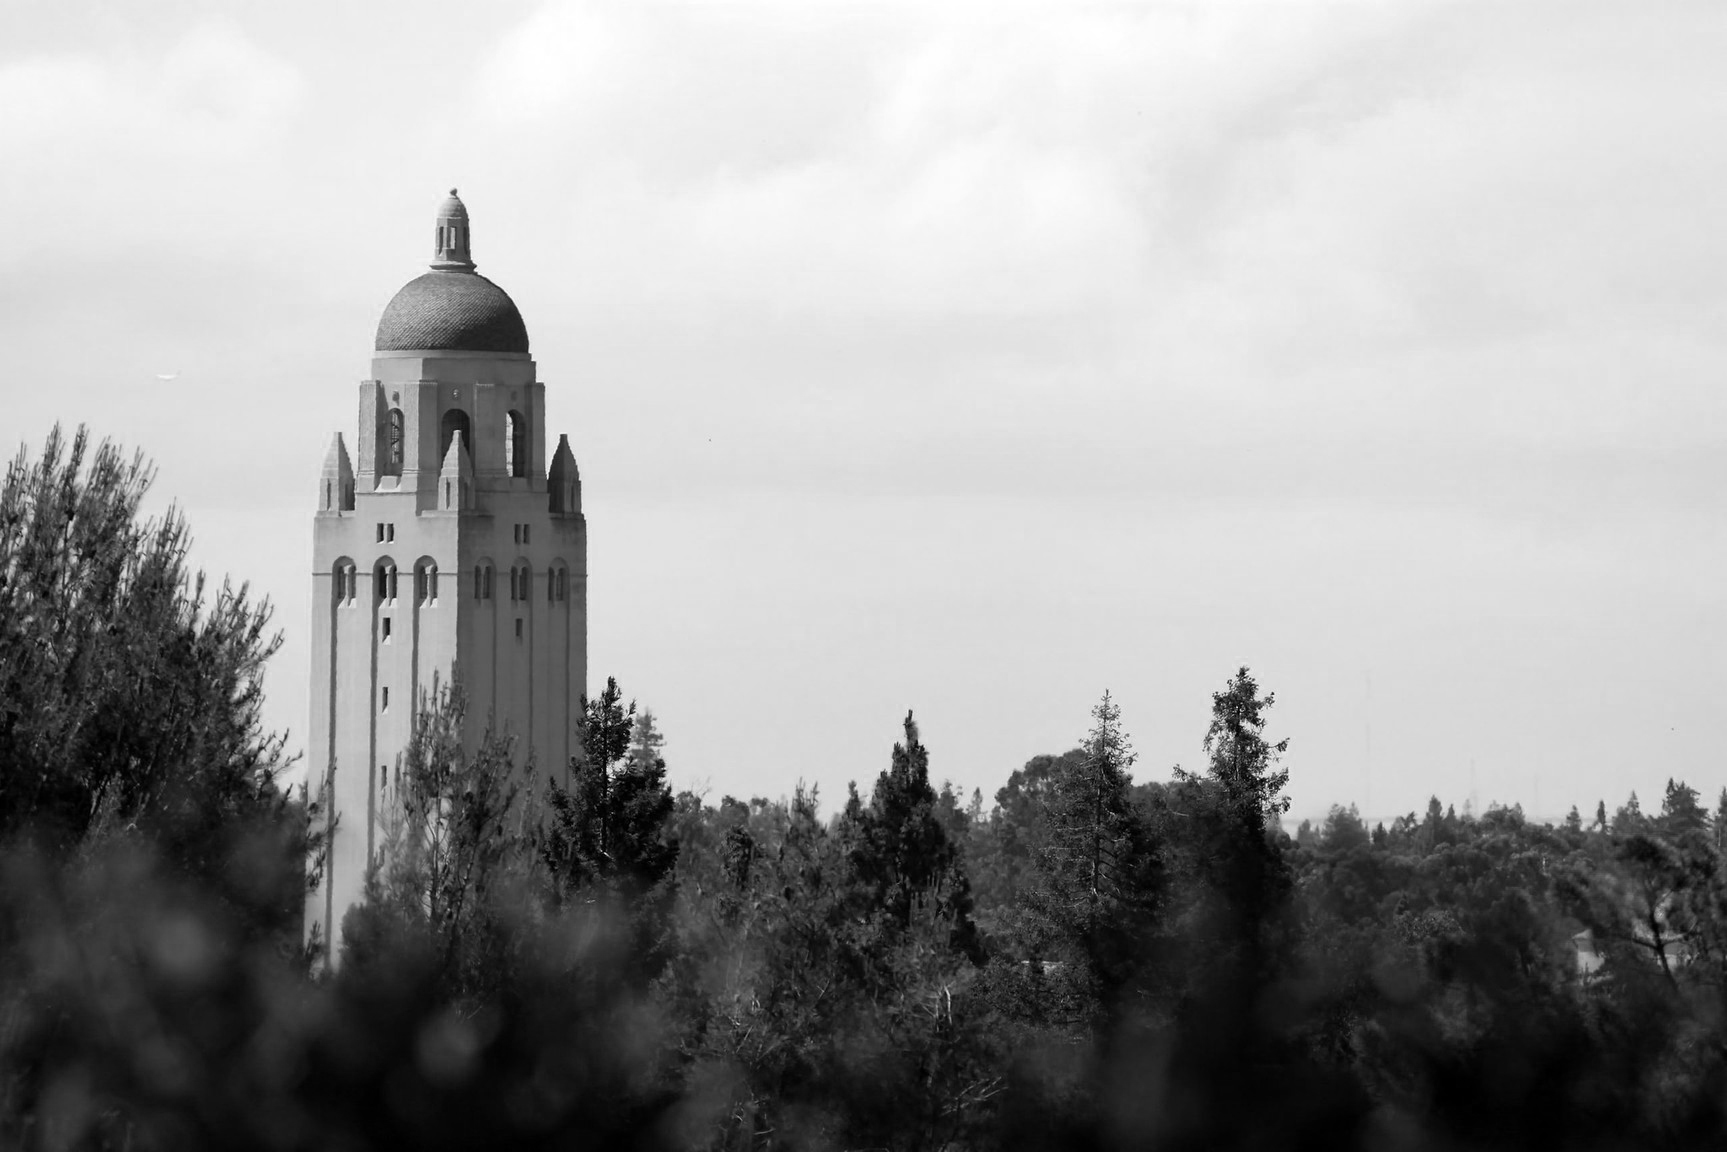 Stanford+Hoover+Tower+Blu+Skye+Media+Peninsula+Silicon+Valley+Photographer-1796x1152.jpg